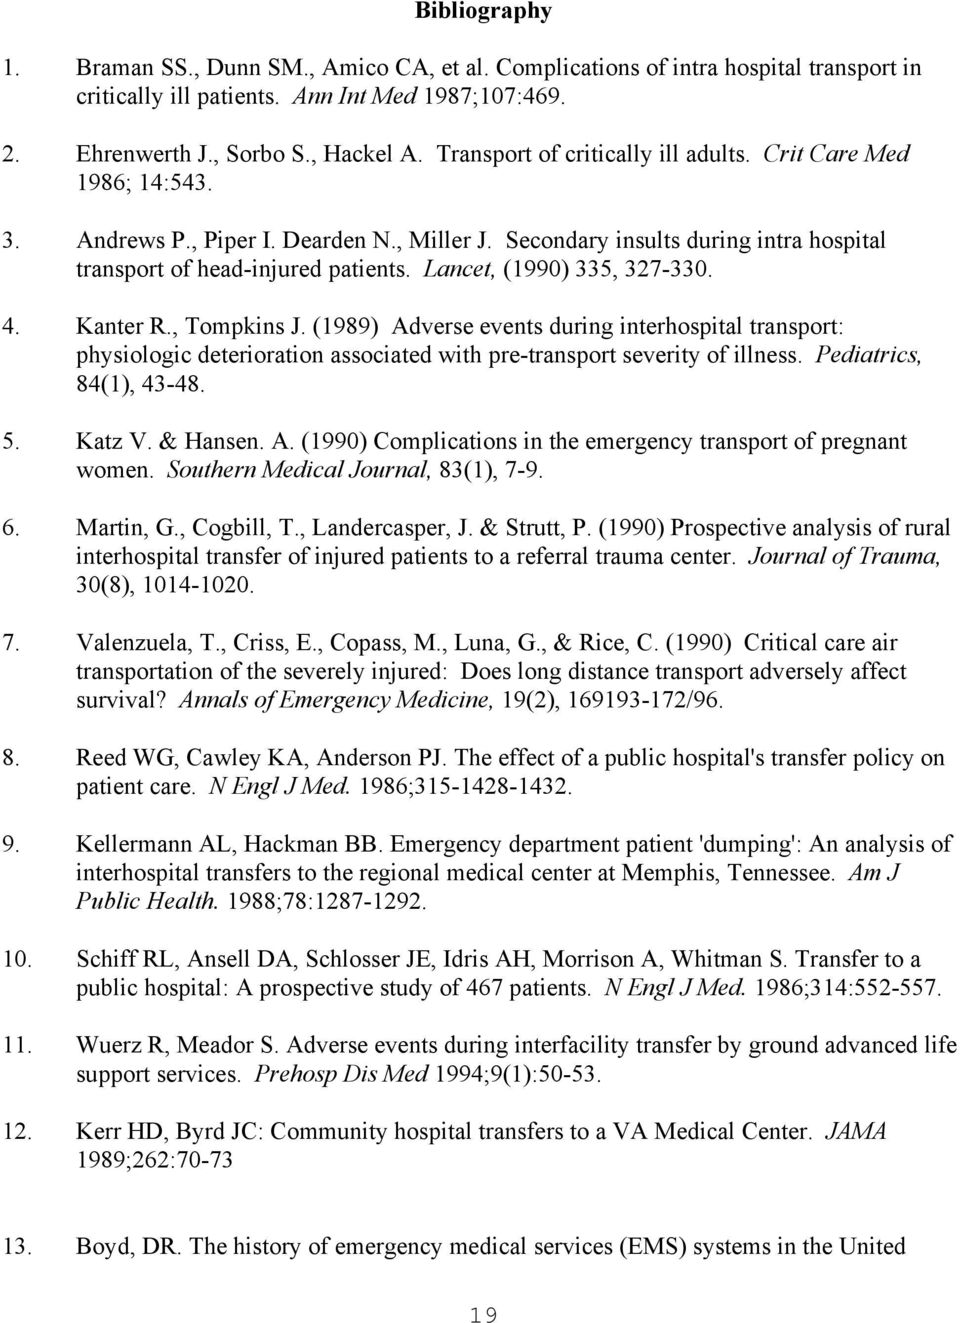 Lancet, (1990) 335, 327-330. 4. Kanter R., Tompkins J. (1989) Adverse events during interhospital transport: physiologic deterioration associated with pre-transport severity of illness.